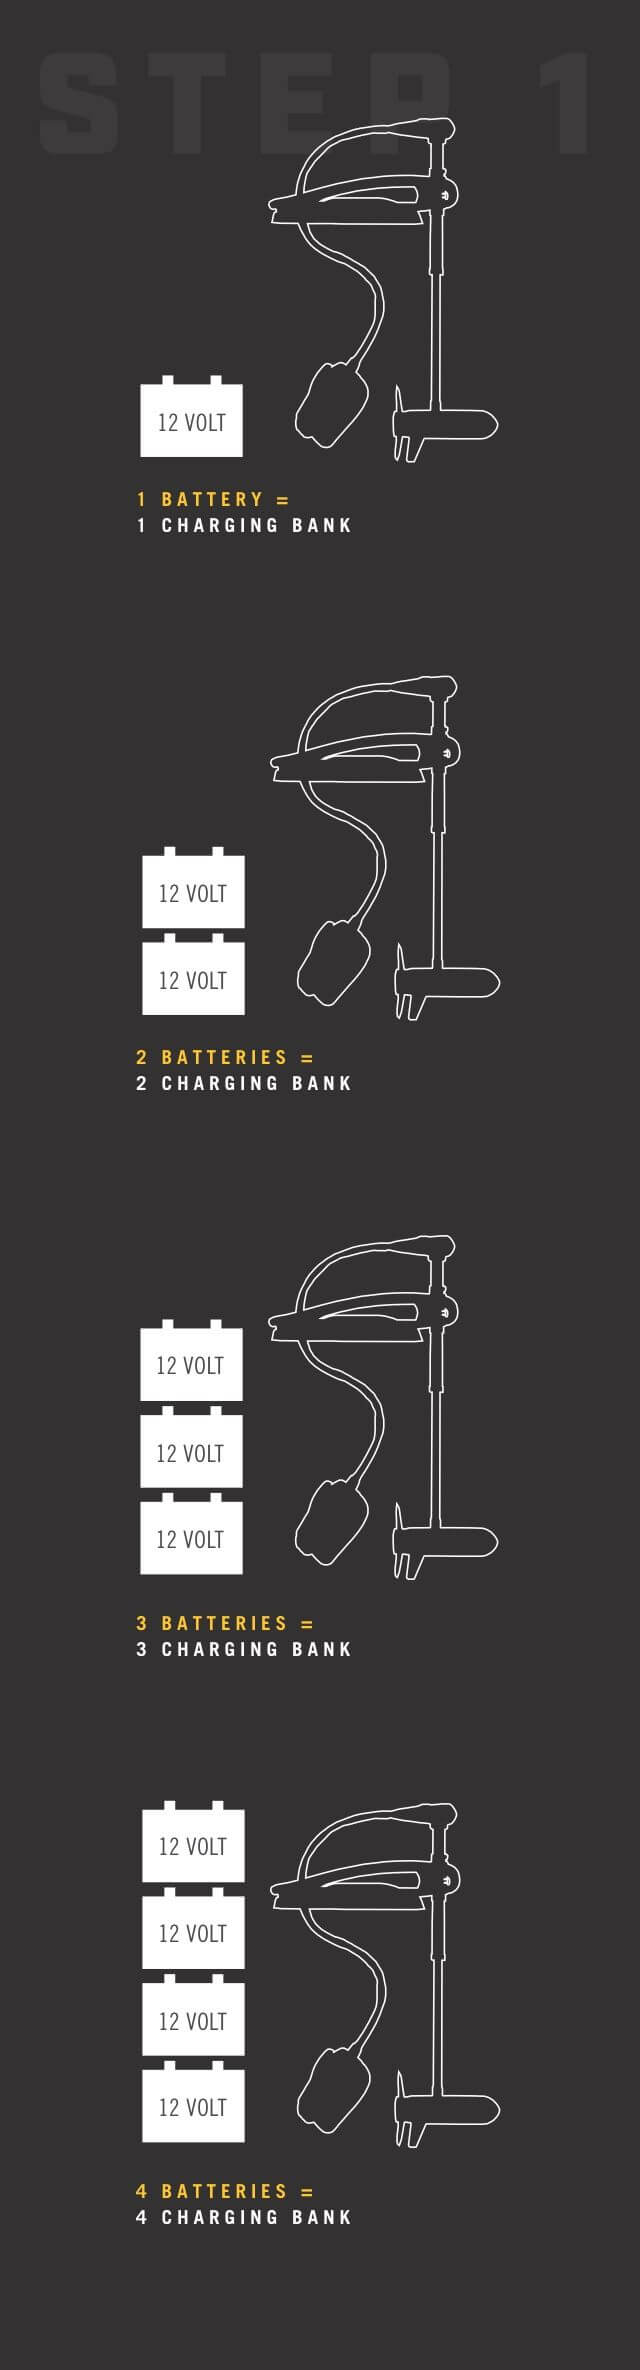 hight resolution of this simply depends on how many batteries you need to charge you need one bank for each battery include your starting battery if appropriate